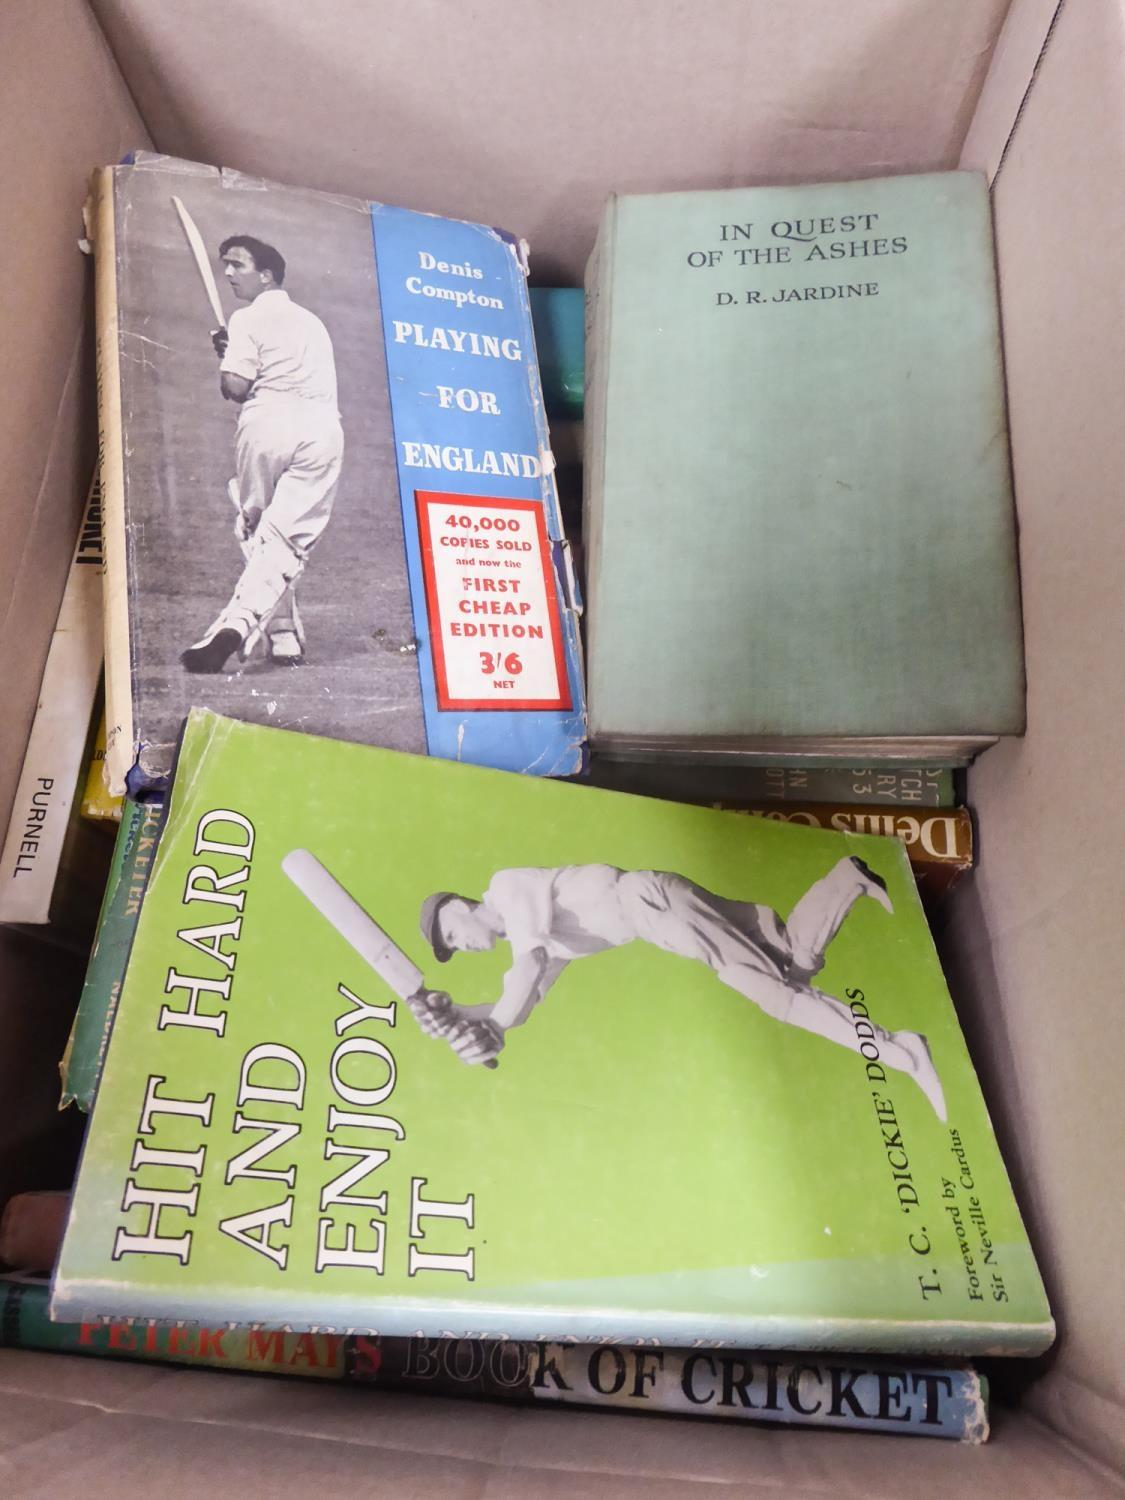 Lot 136 - CRICKET T C DICKIE DODDS - HIT HARD AND ENJOY The Cricketer Ltd 1976 PETER MAYS BOOK OF CRICKET